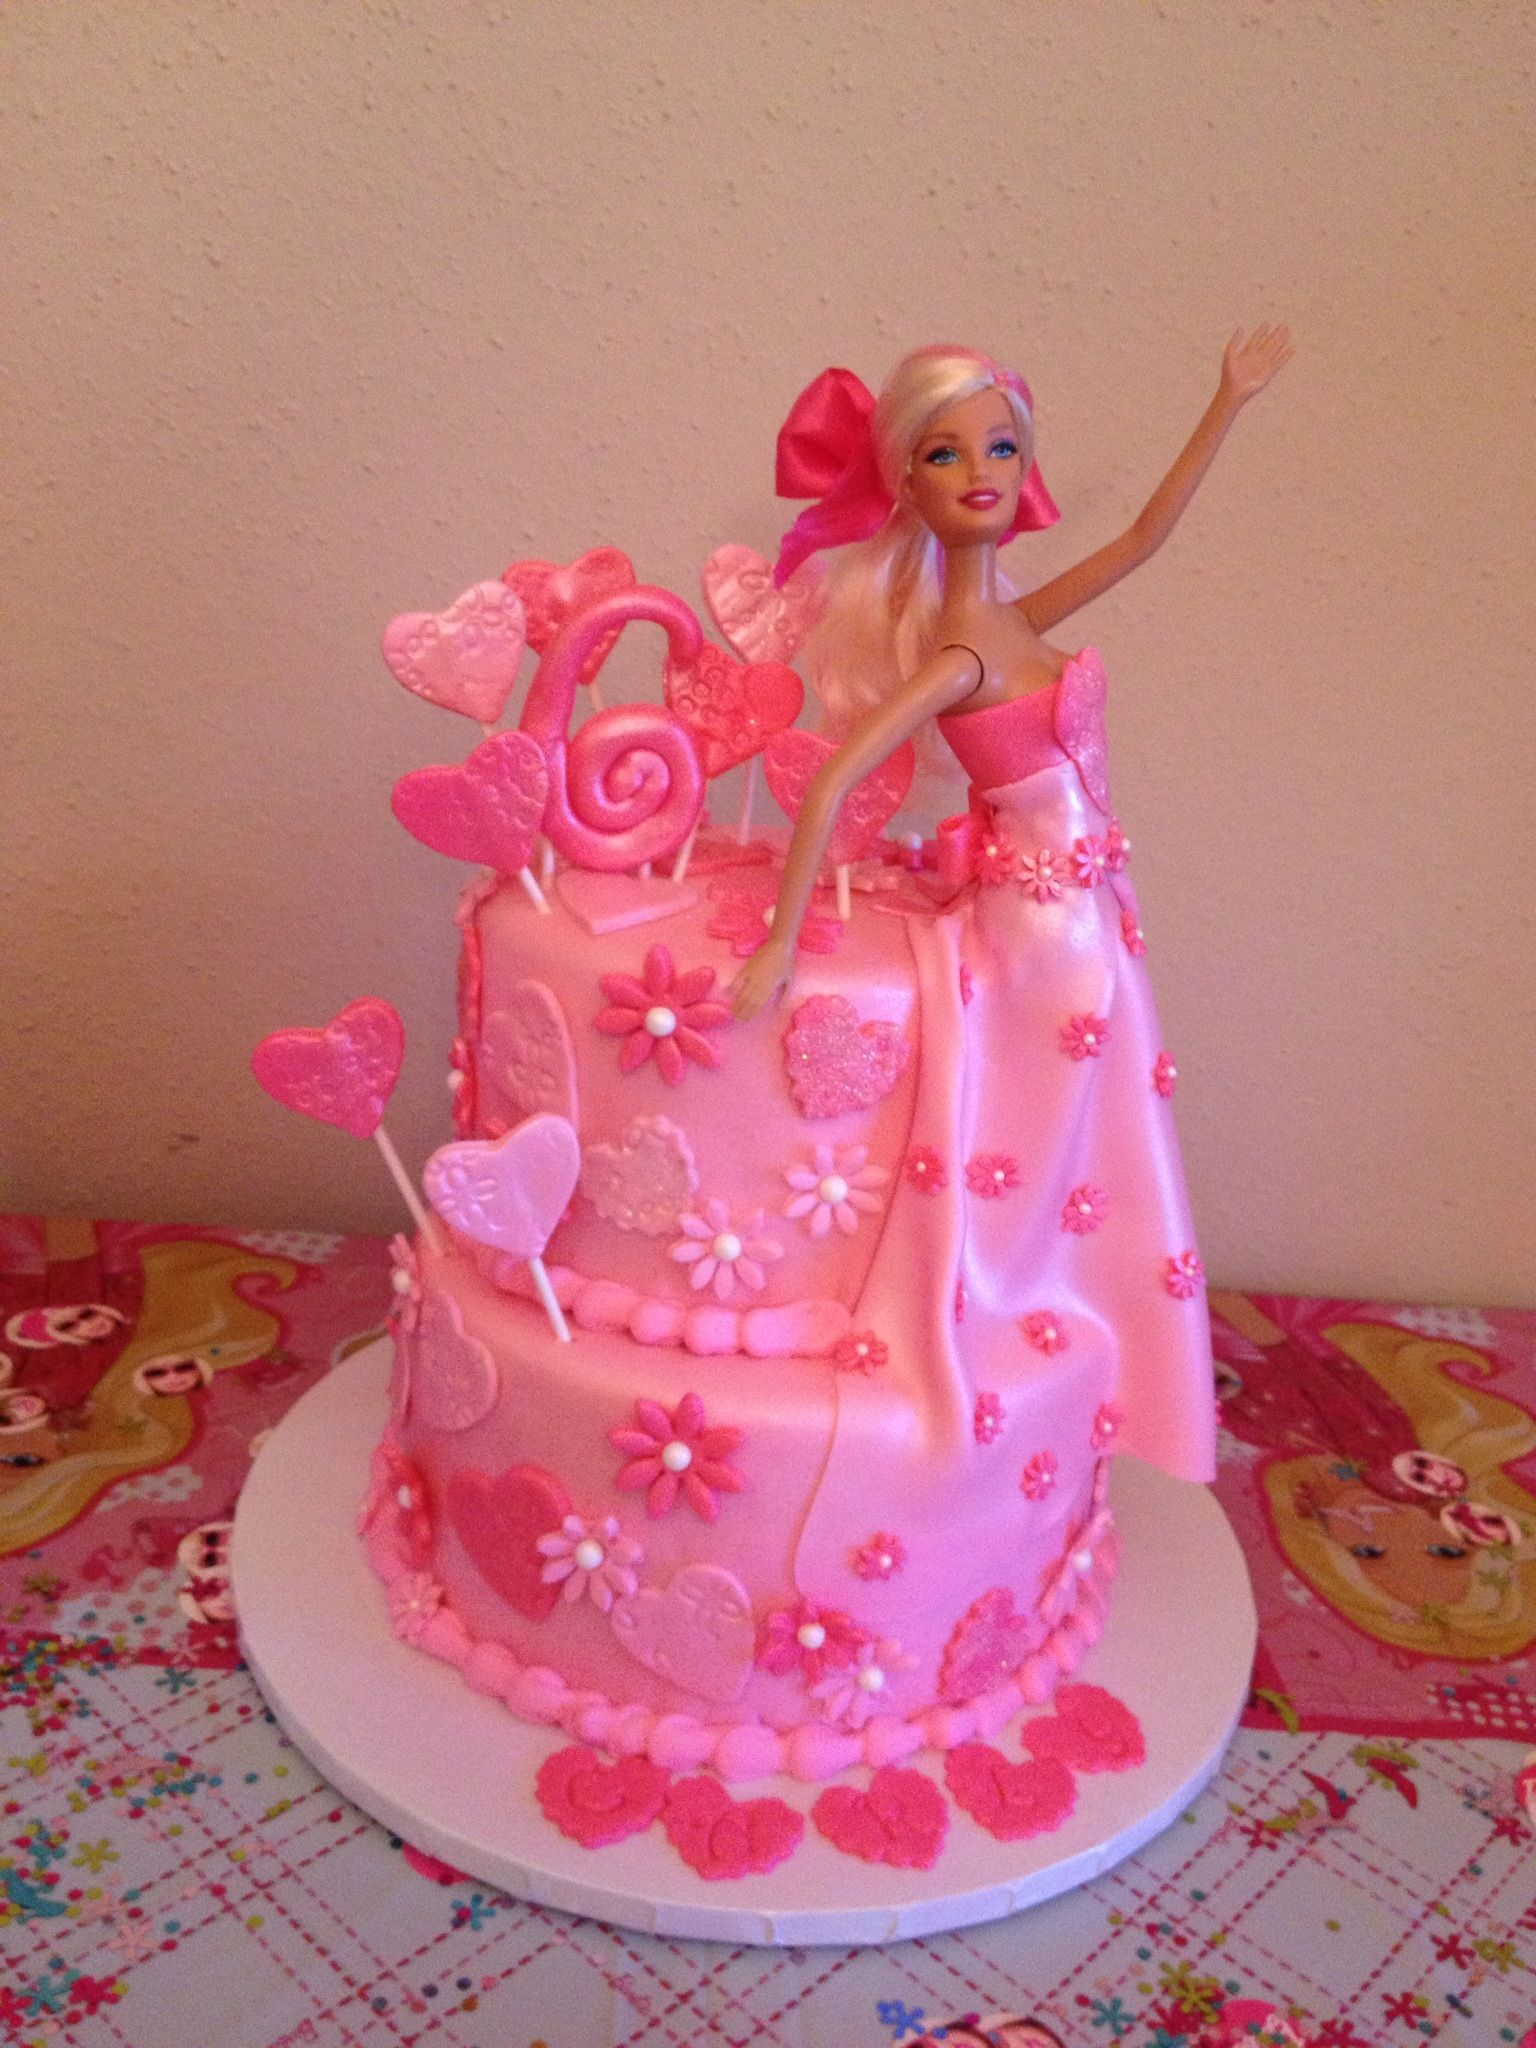 Pink Barbie Cake With Pink Hearts And Flowers With